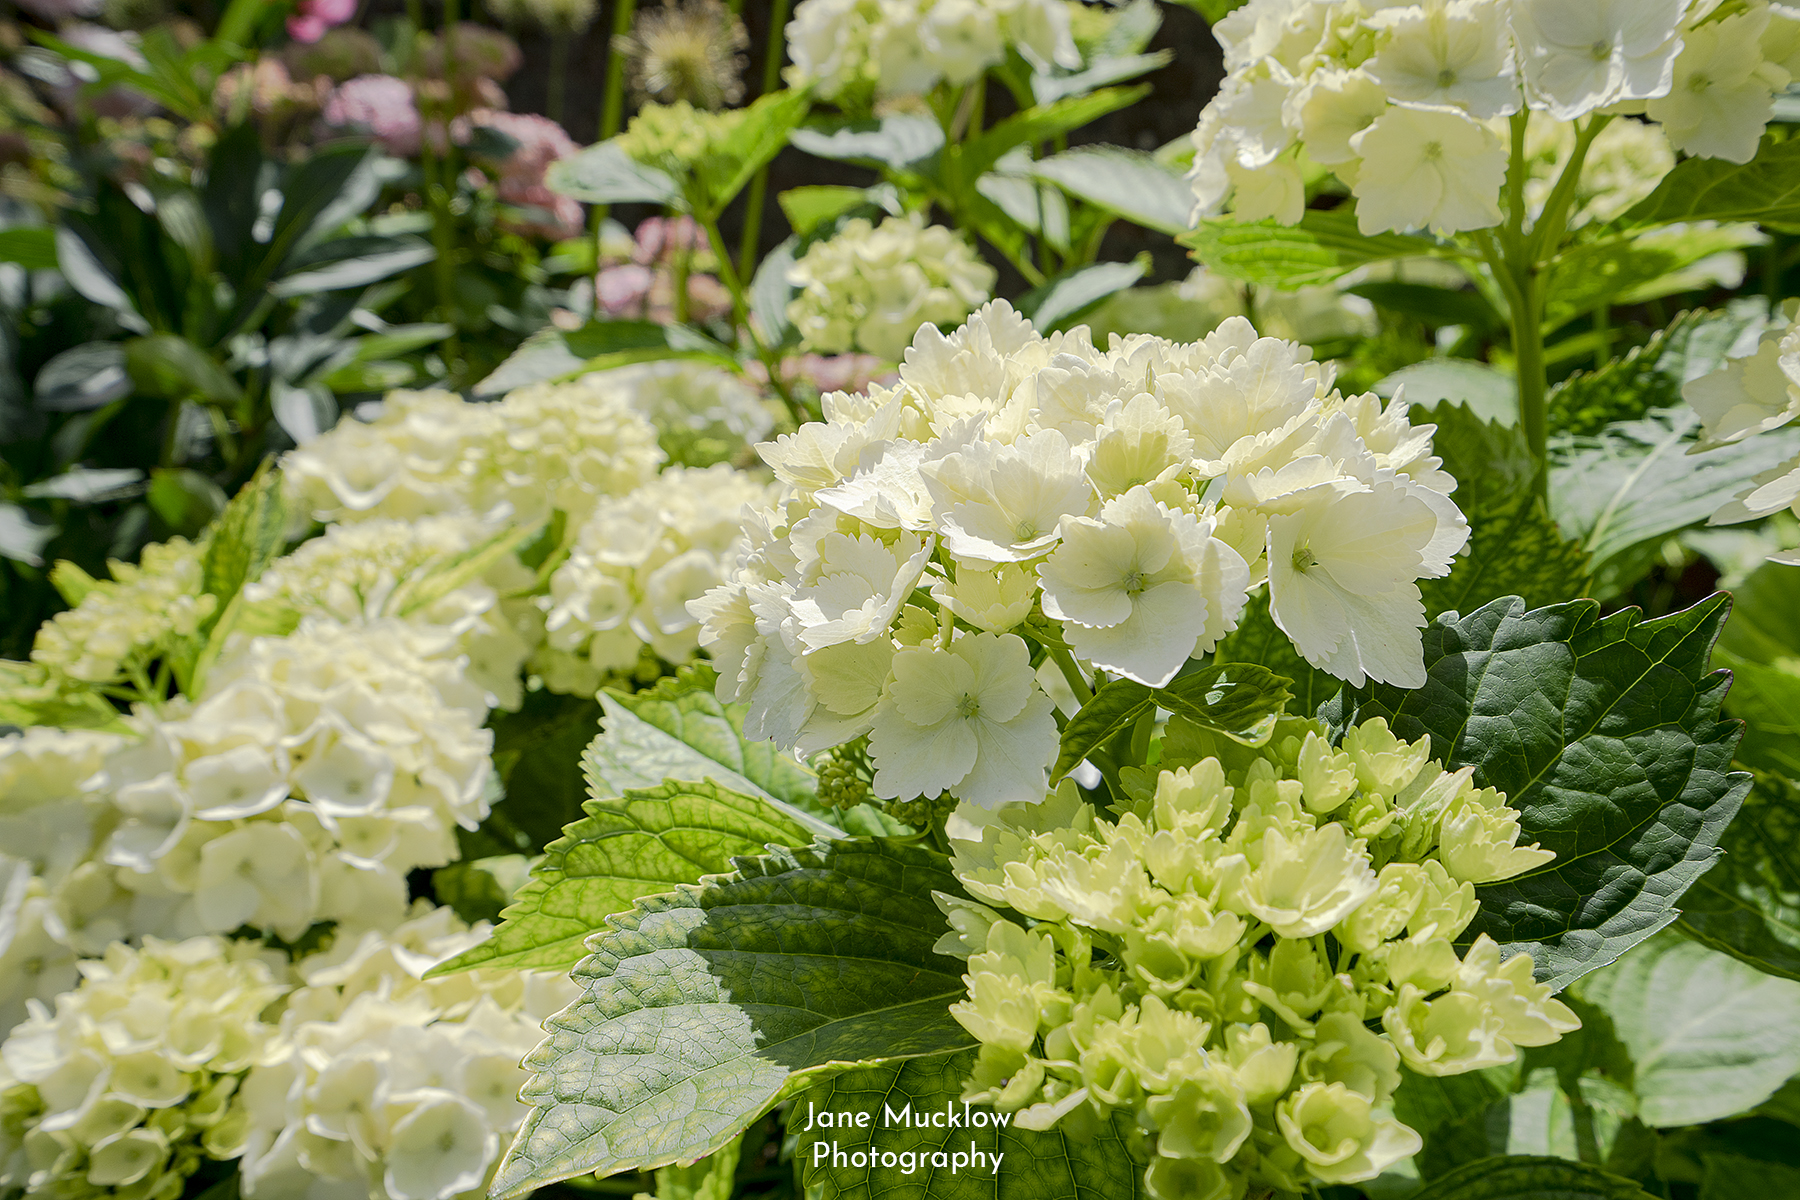 Photo of white hydrangea blooms by Jane Mucklow